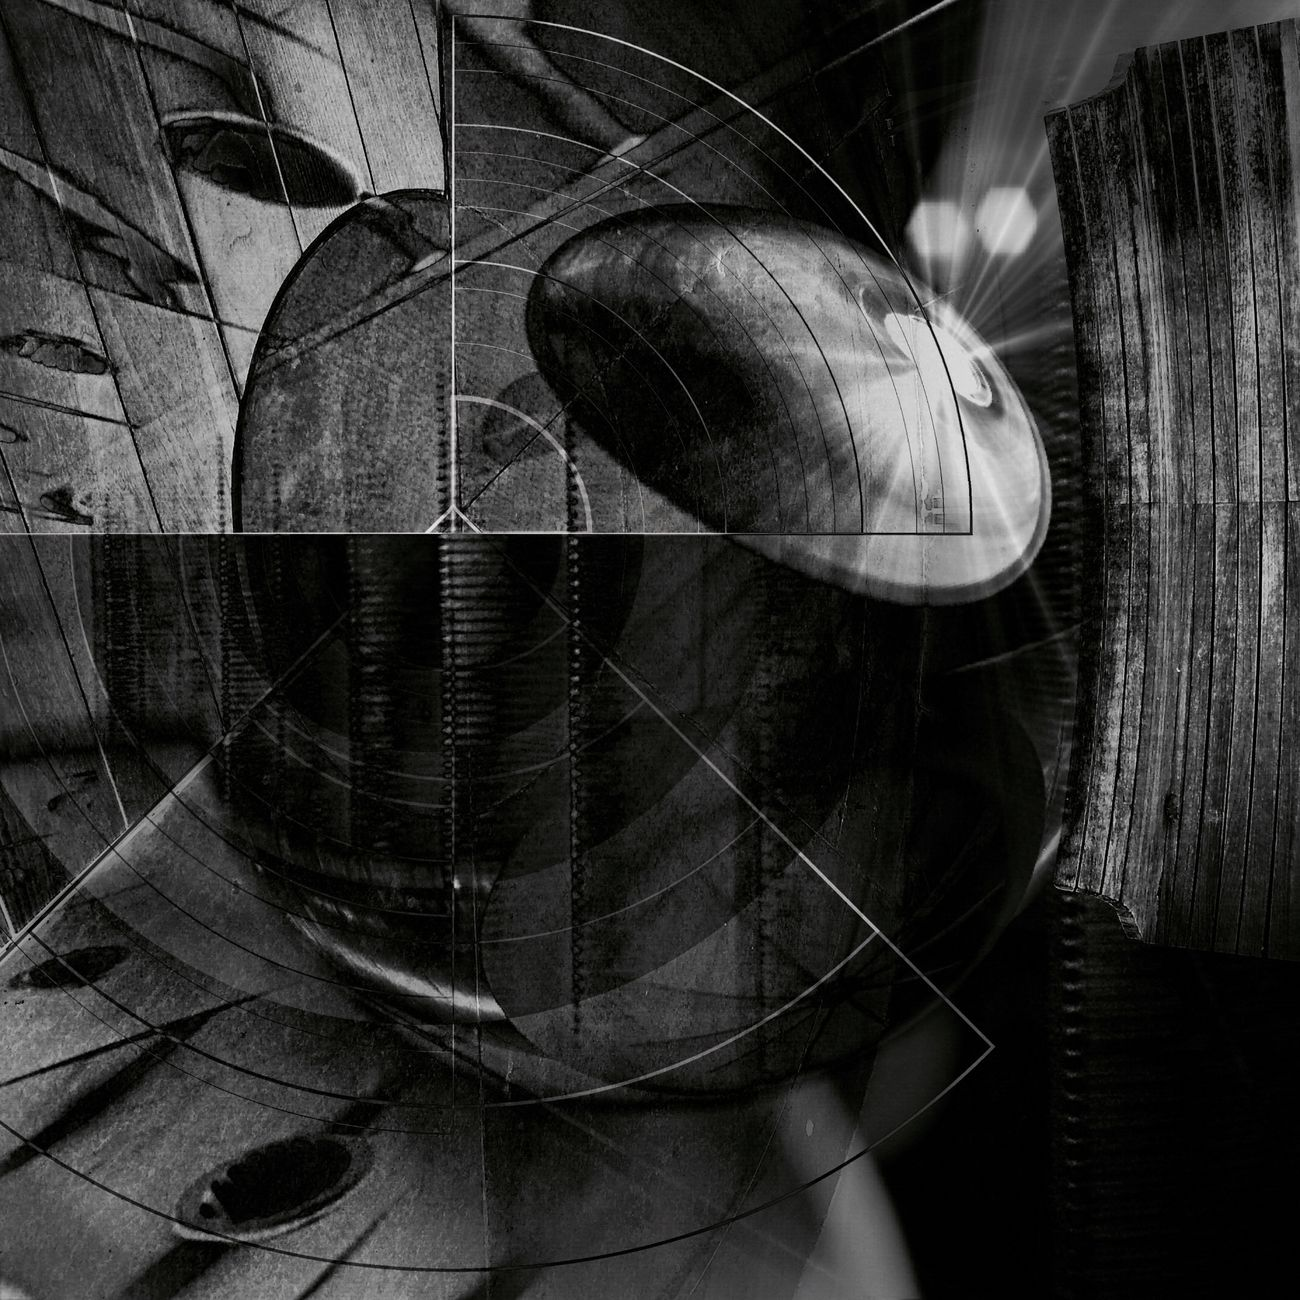 Blackandwhite Photography Black & White Monochrome AMPt_community Digital World Abstract Geometric Abstraction NEM Black&white